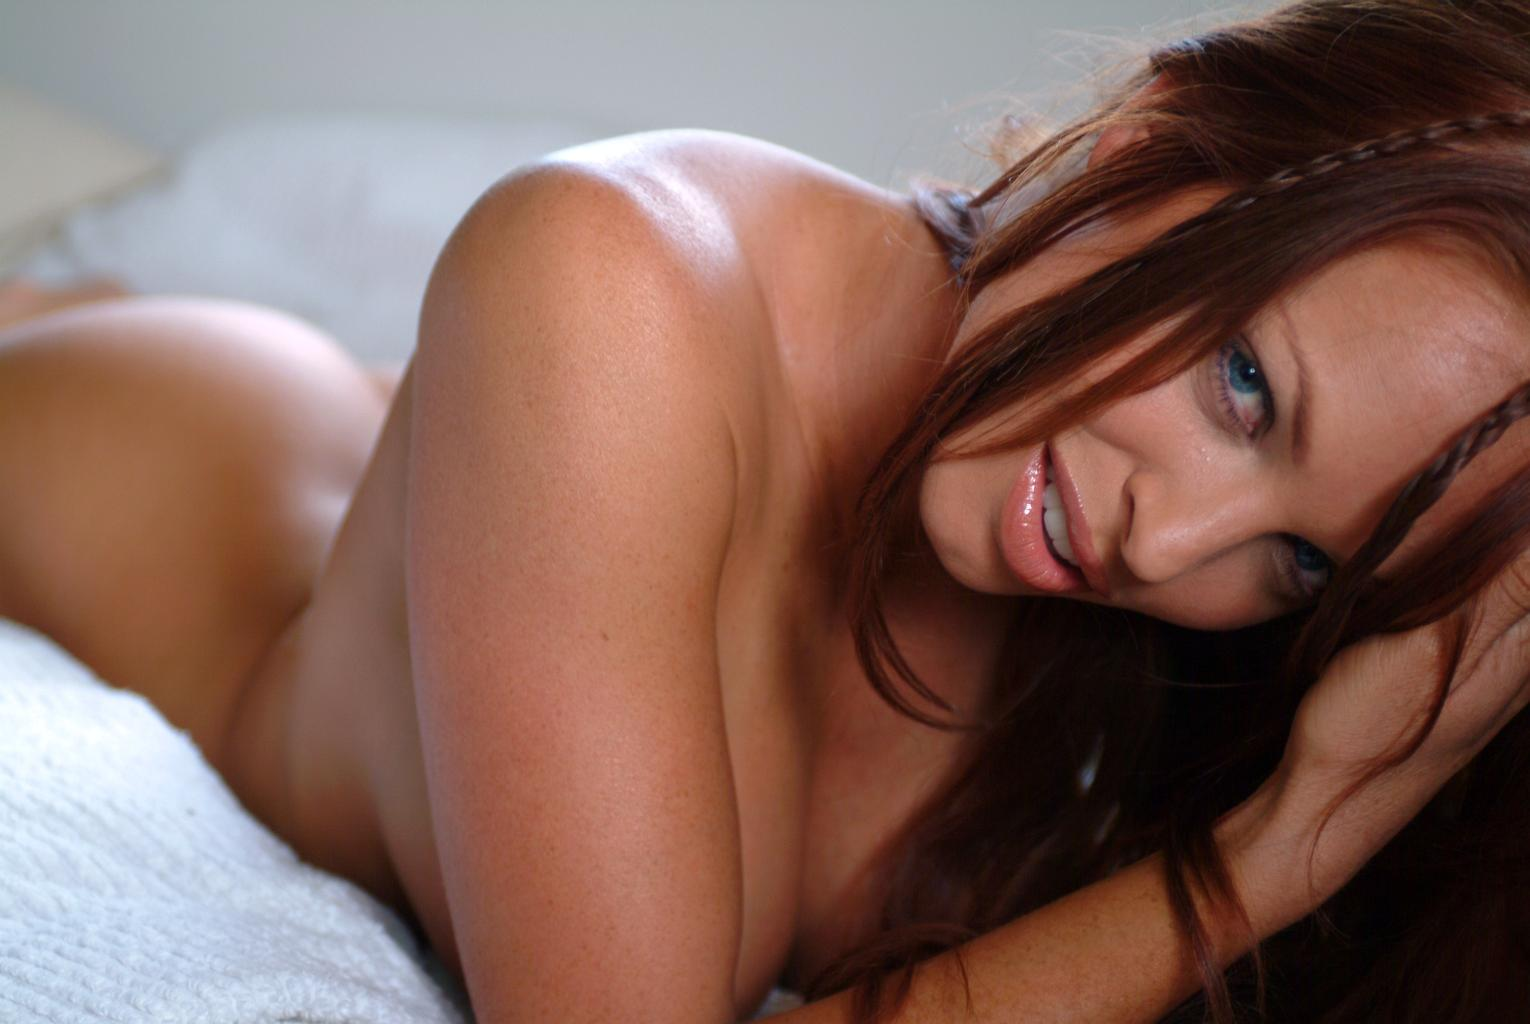 nude christy hemme pictures